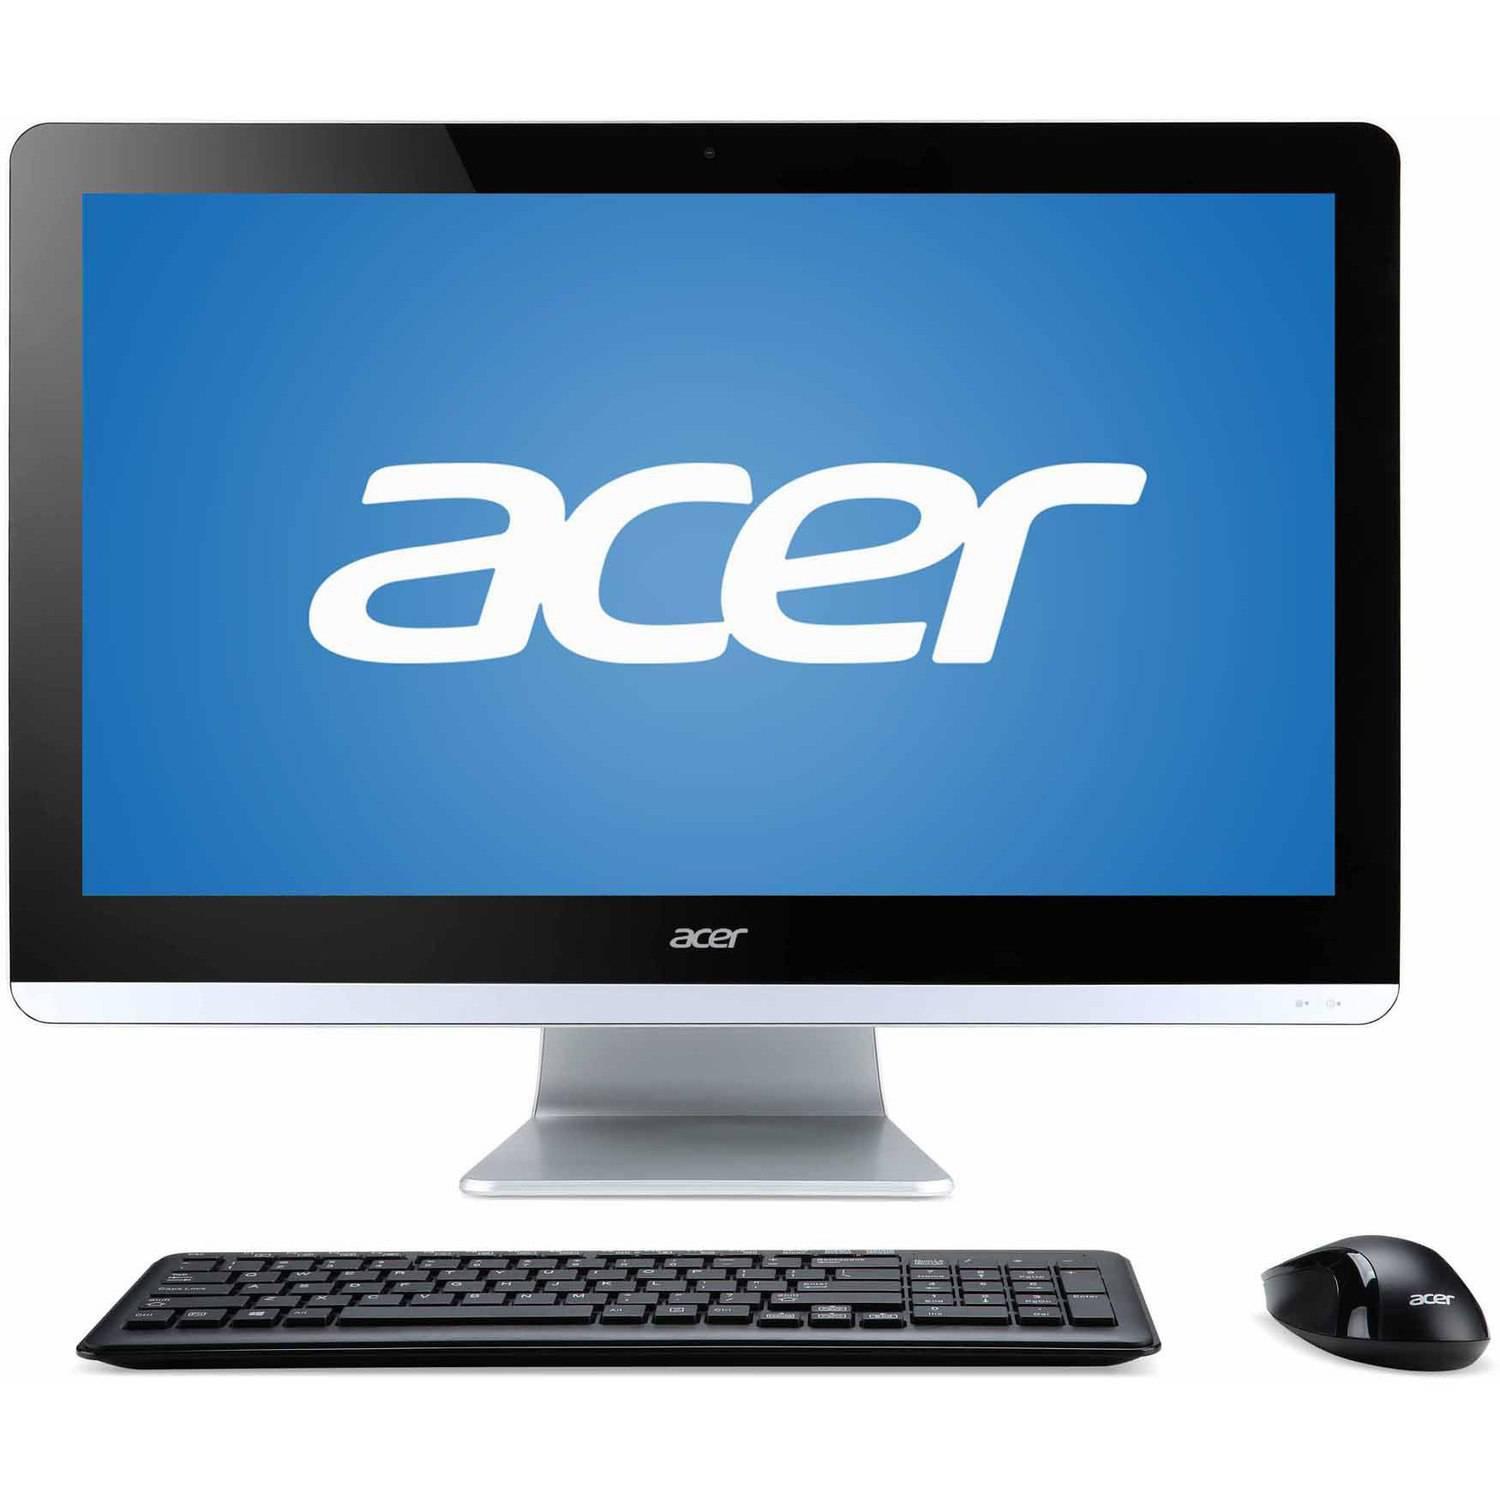 "Acer Aspire AZC-700G-UW61 All-in-One Desktop PC with Intel Celeron N3150 Processor, 4GB Memory, 19.5"" Display, 500GB Hard Drive and Windows 10"